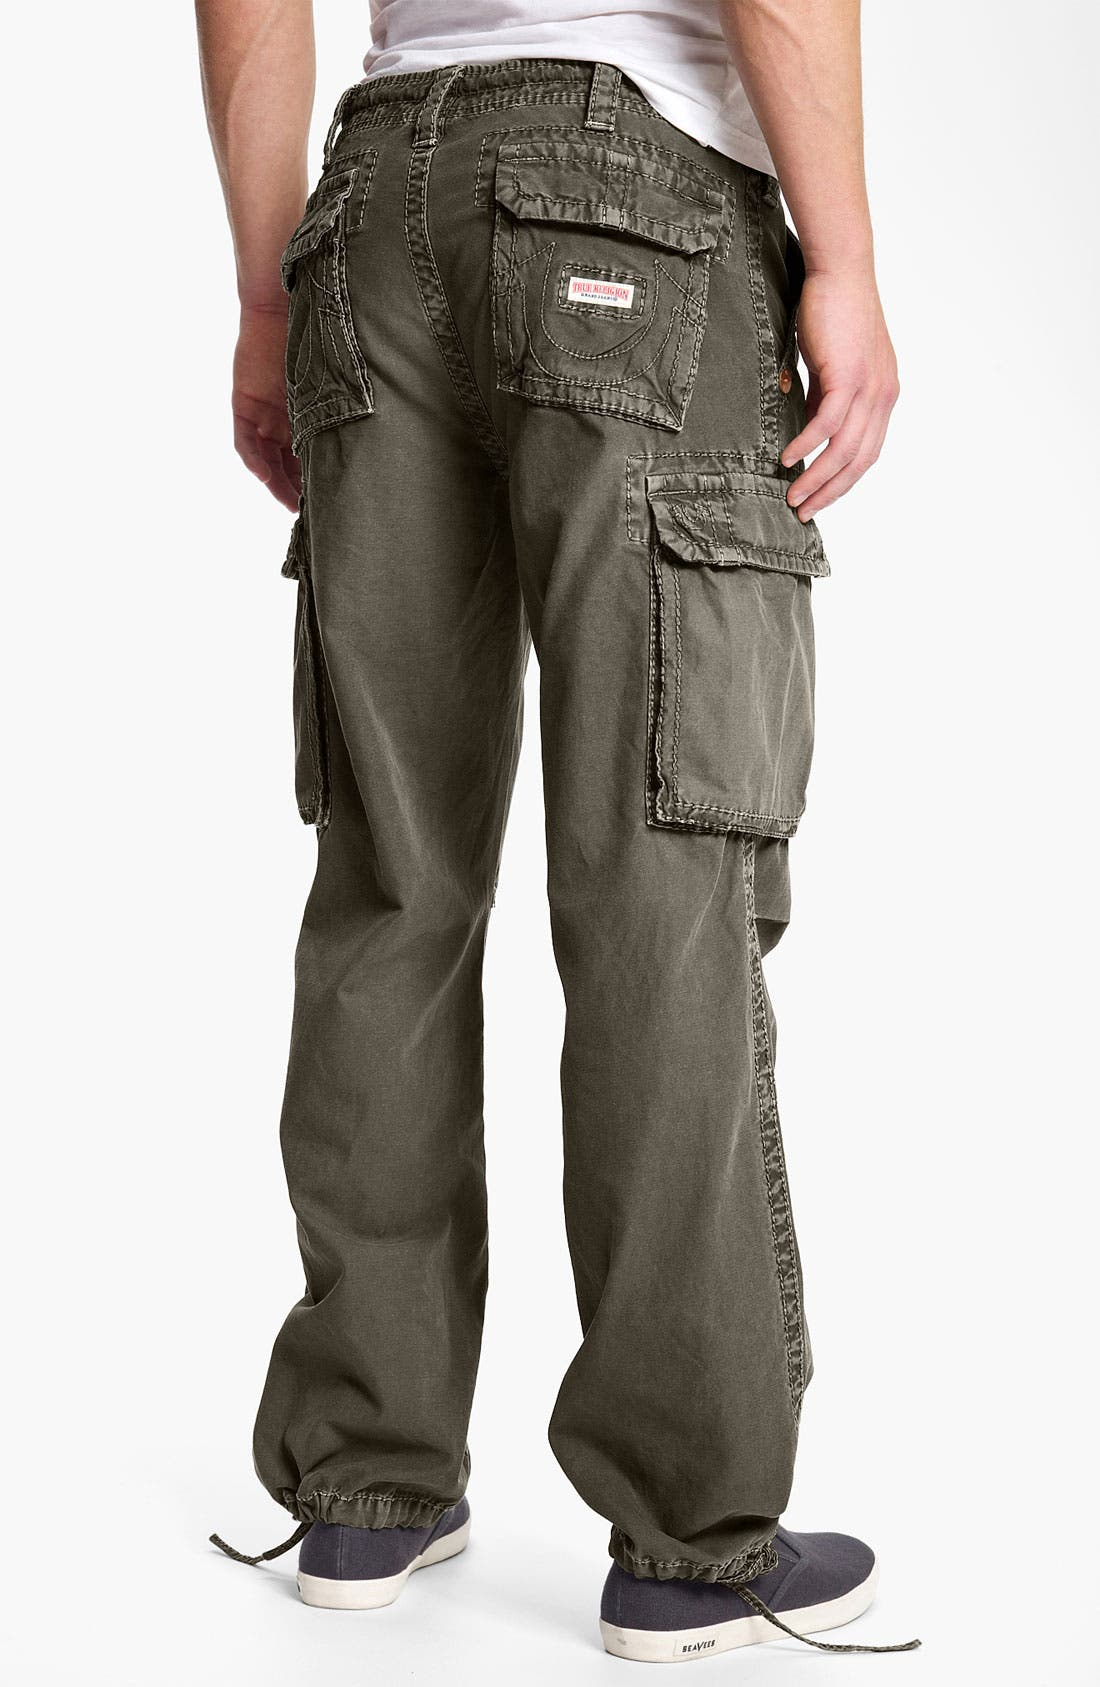 Alternate Image 1 Selected - True Religion Brand Jeans 'Anthony' Straight Leg Cargo Pants (Online Exclusive)